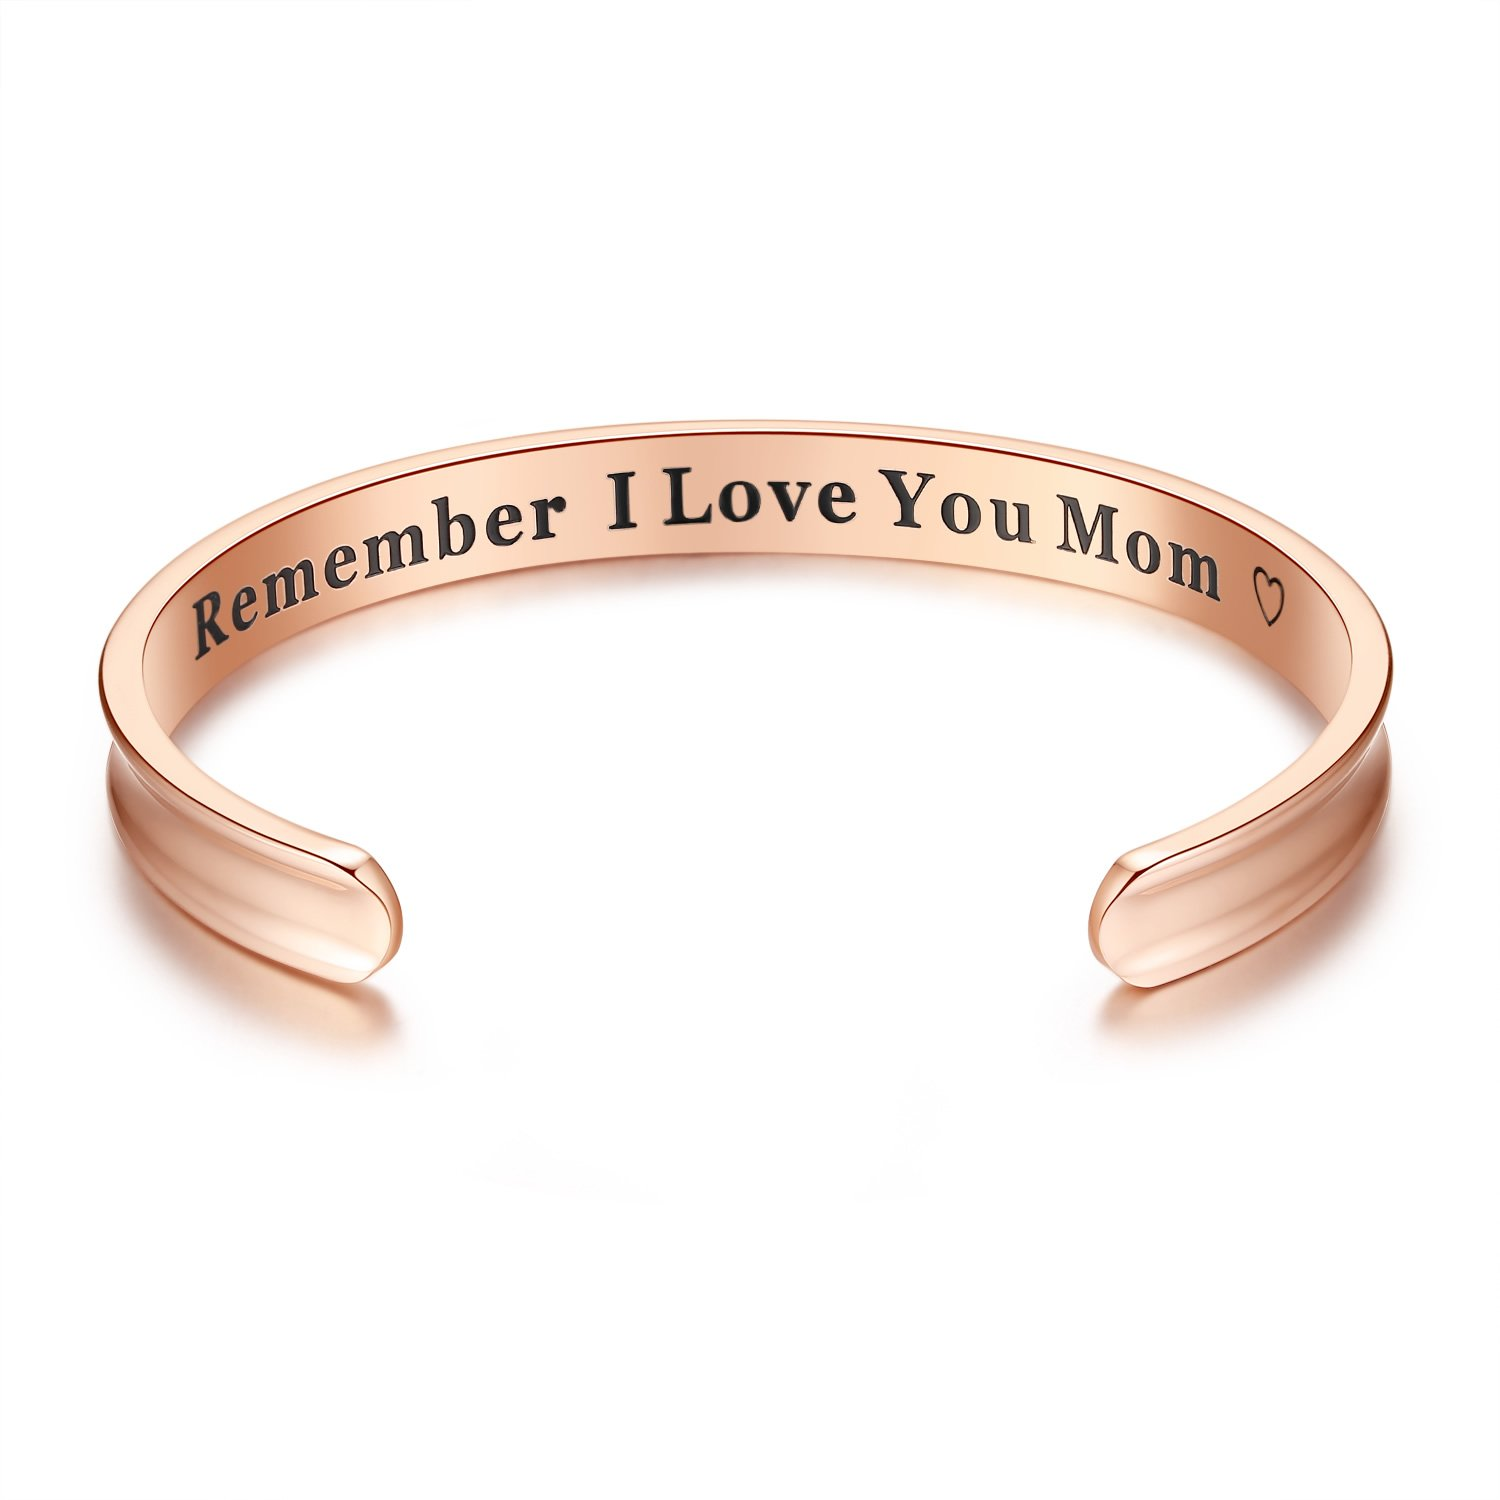 For Mother's Day Gifts - 'Remember I Love You Mom' Cuff Bangle Bracelets from Mom and Daughter Birthdays